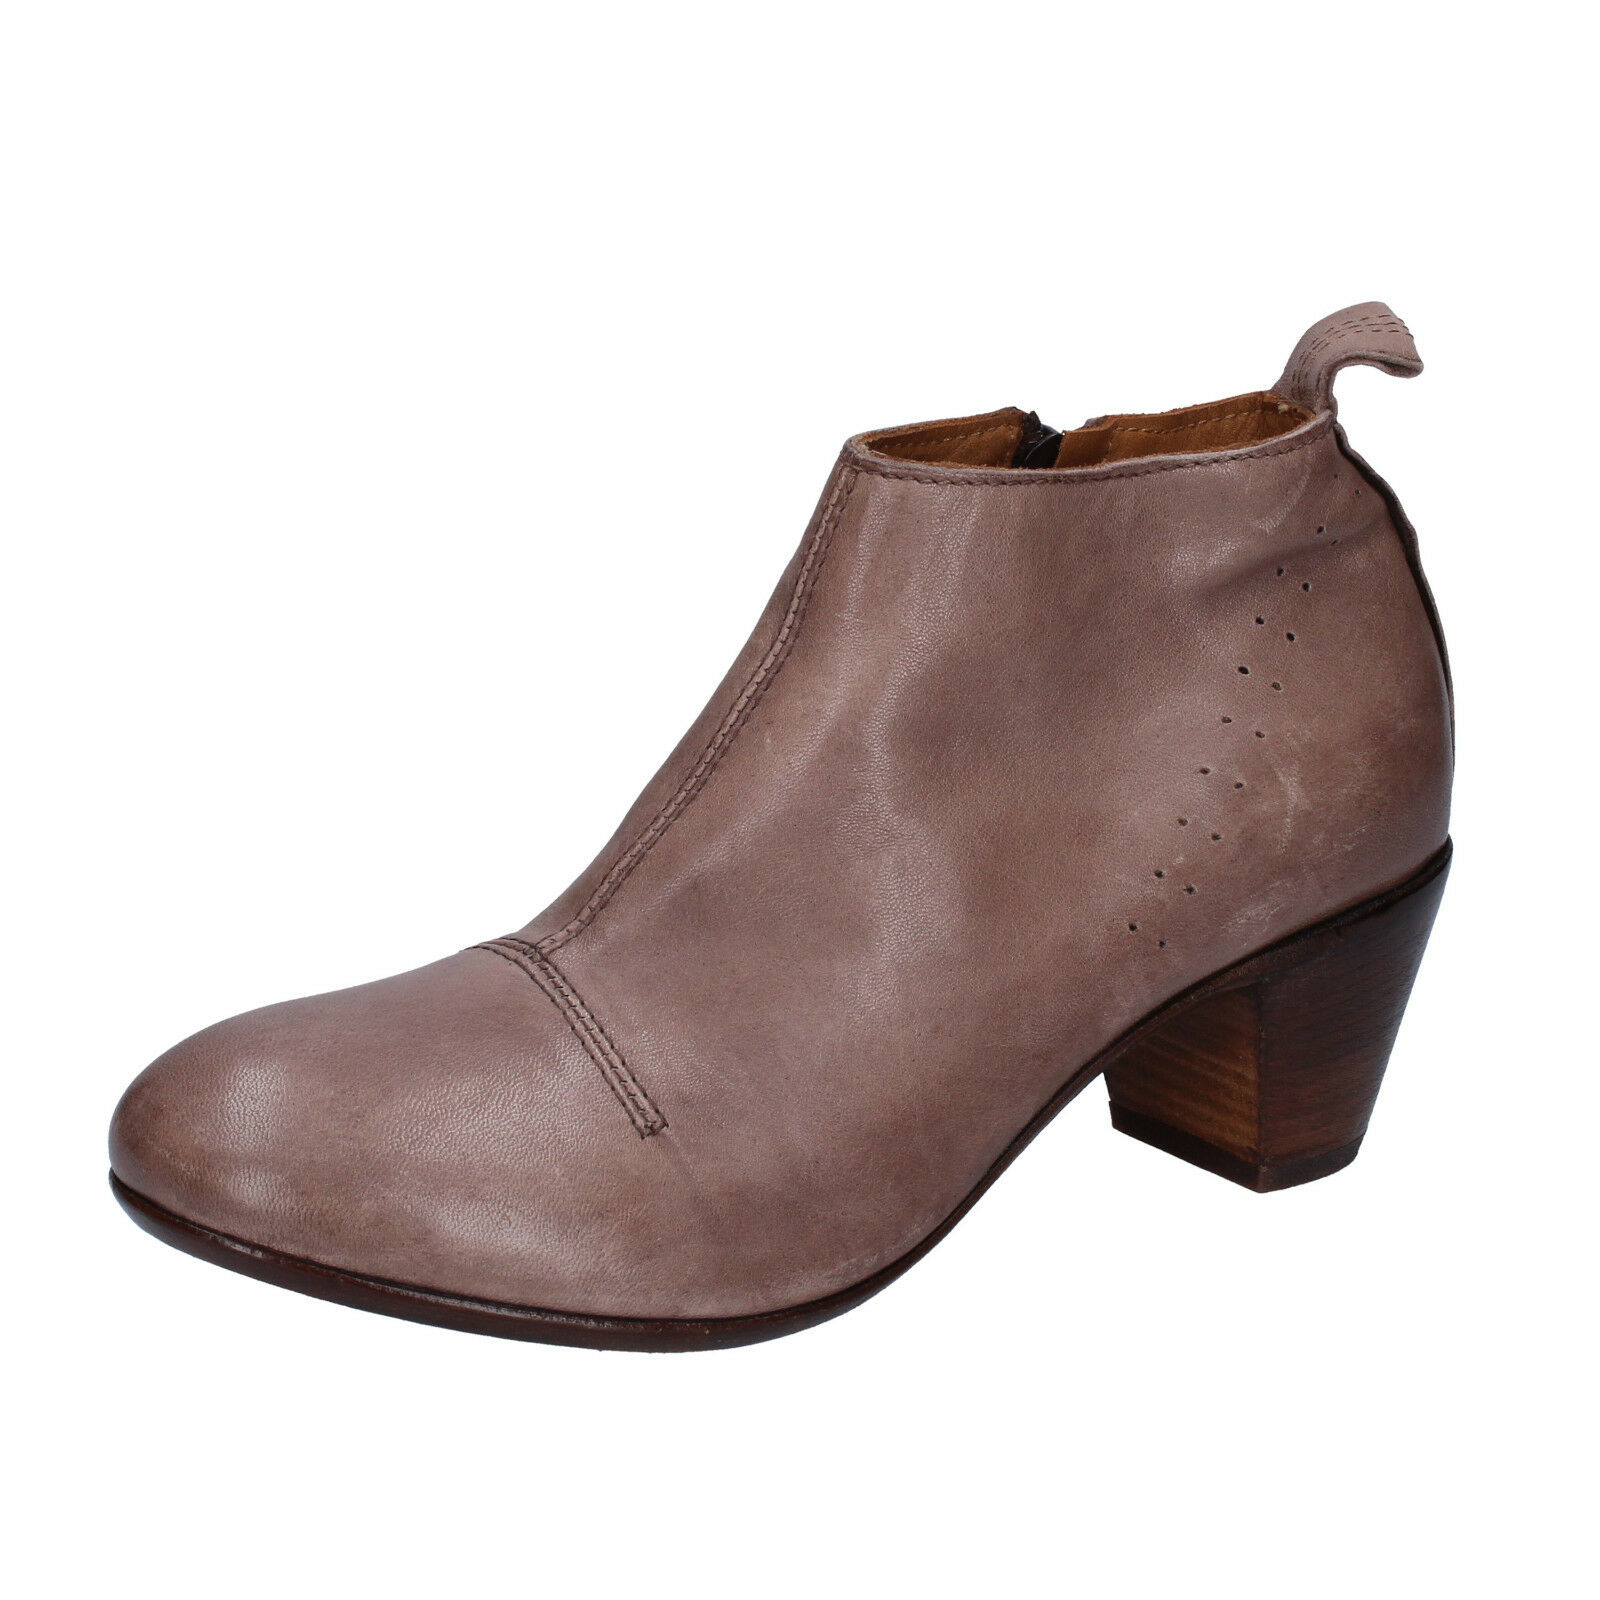 11f49cc67ea3b shoes 4 () ankle boots brown leather BT155-37 MOMA Women's neseca2838-Boots